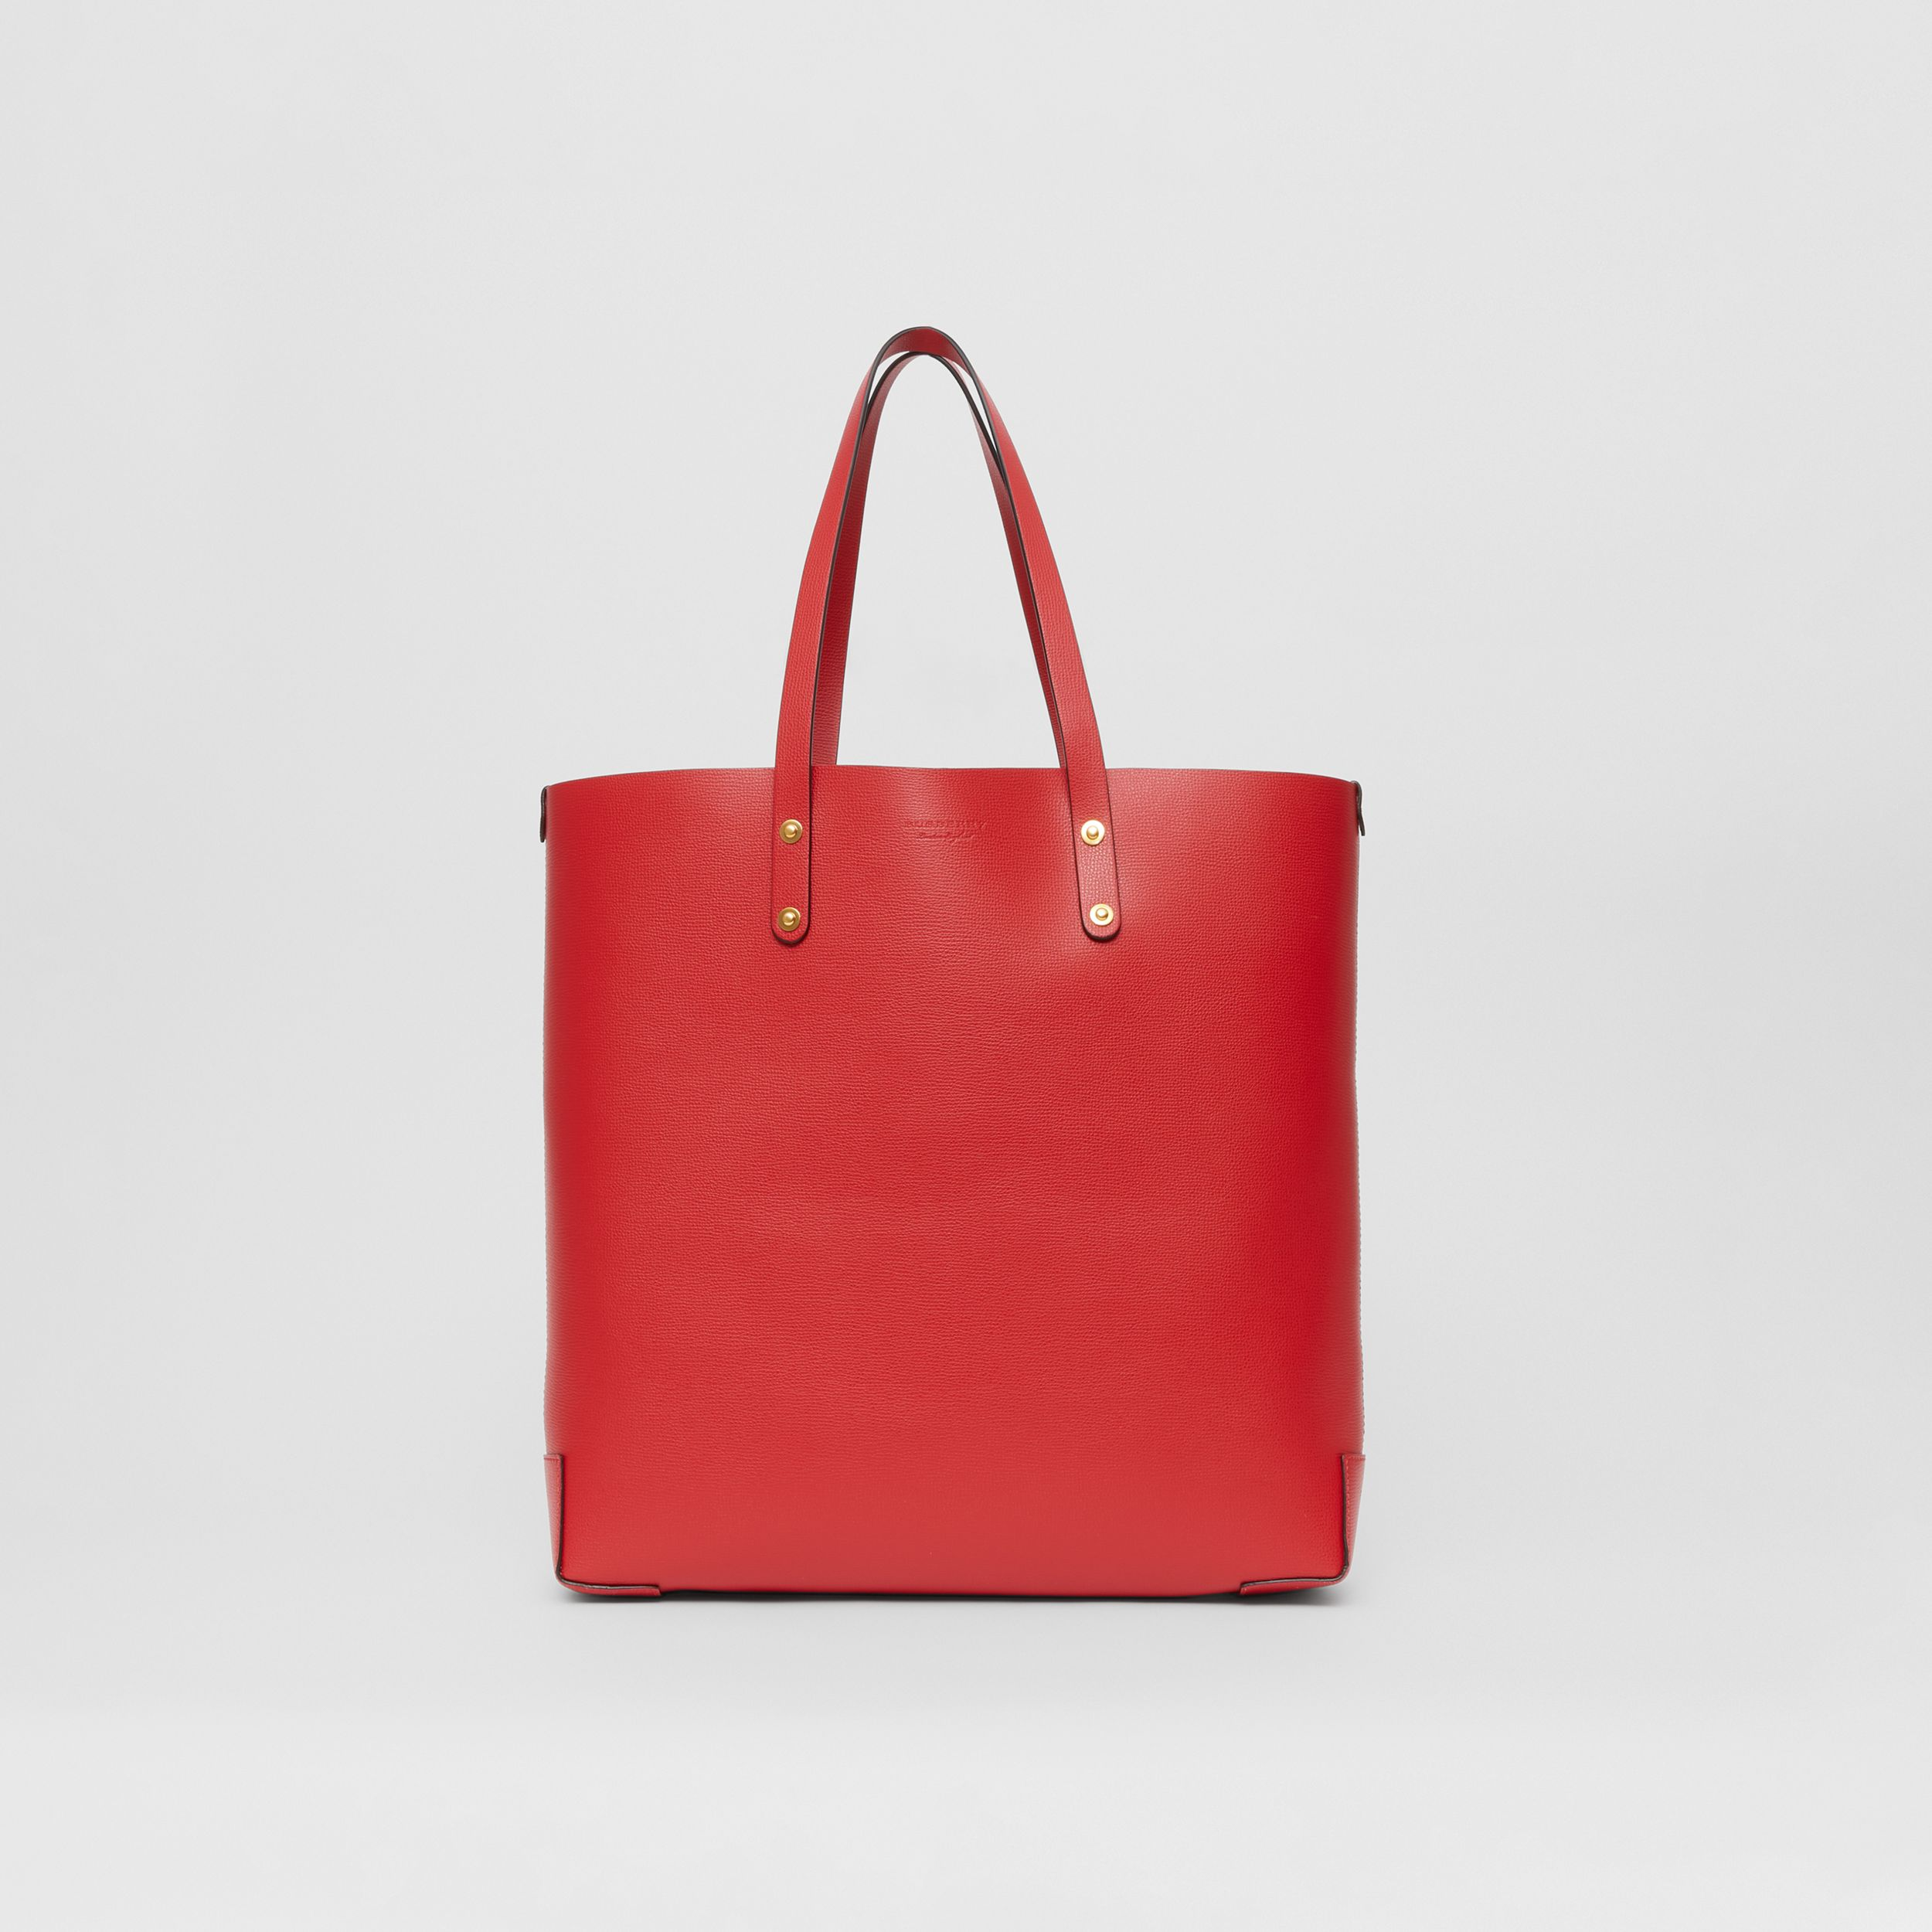 Large Grainy Leather Tote Bag in Rust Red - Women | Burberry - 1